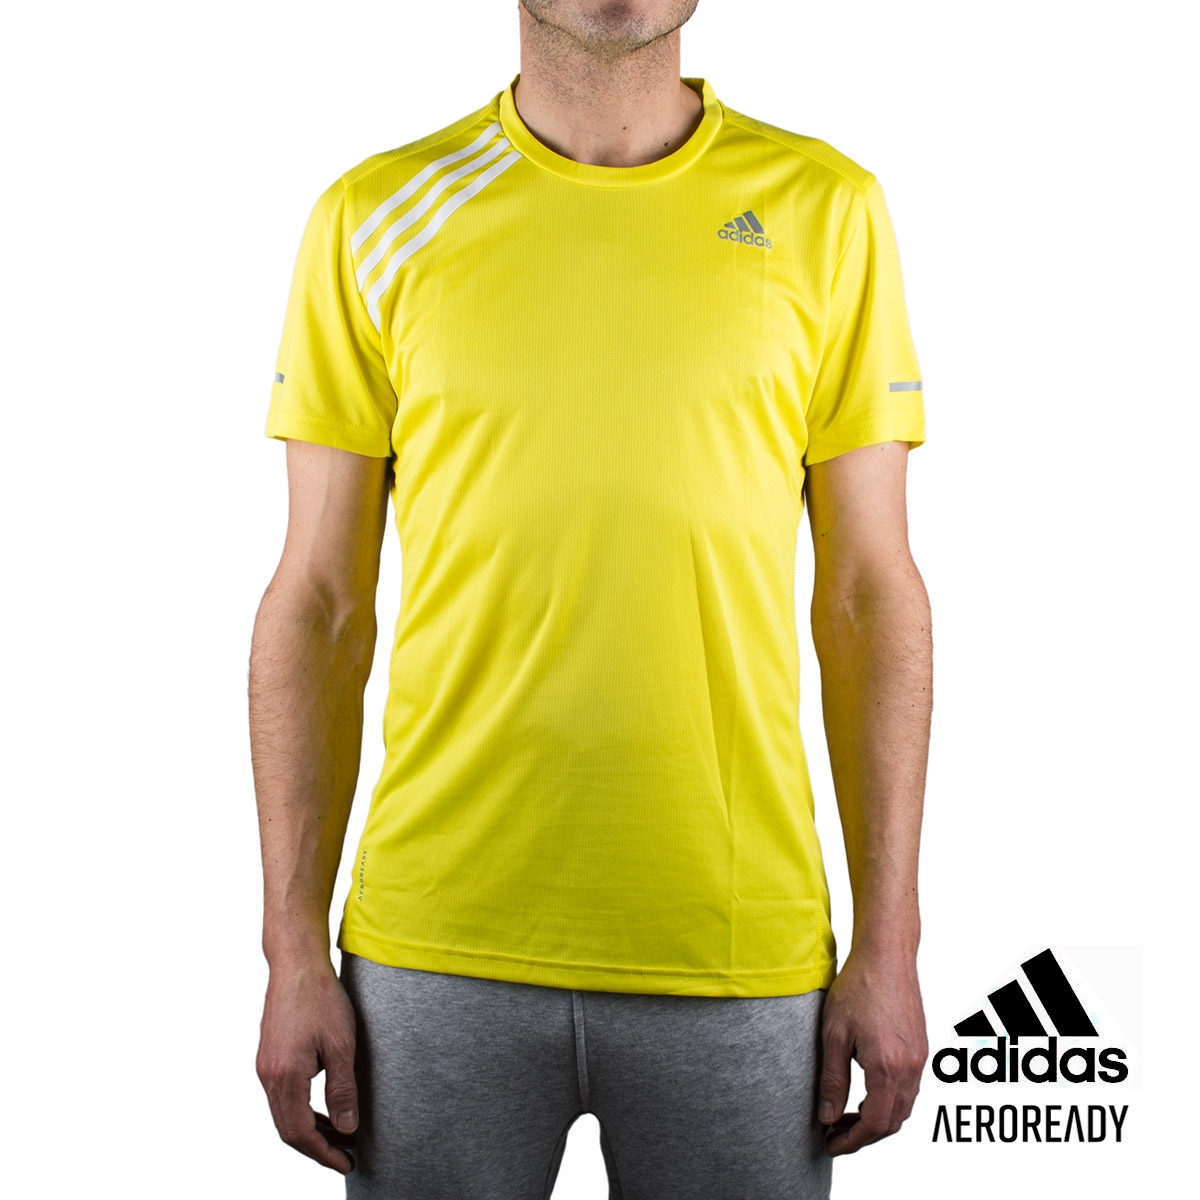 Adidas Camiseta Own The Run Tee Amarilla Hombre